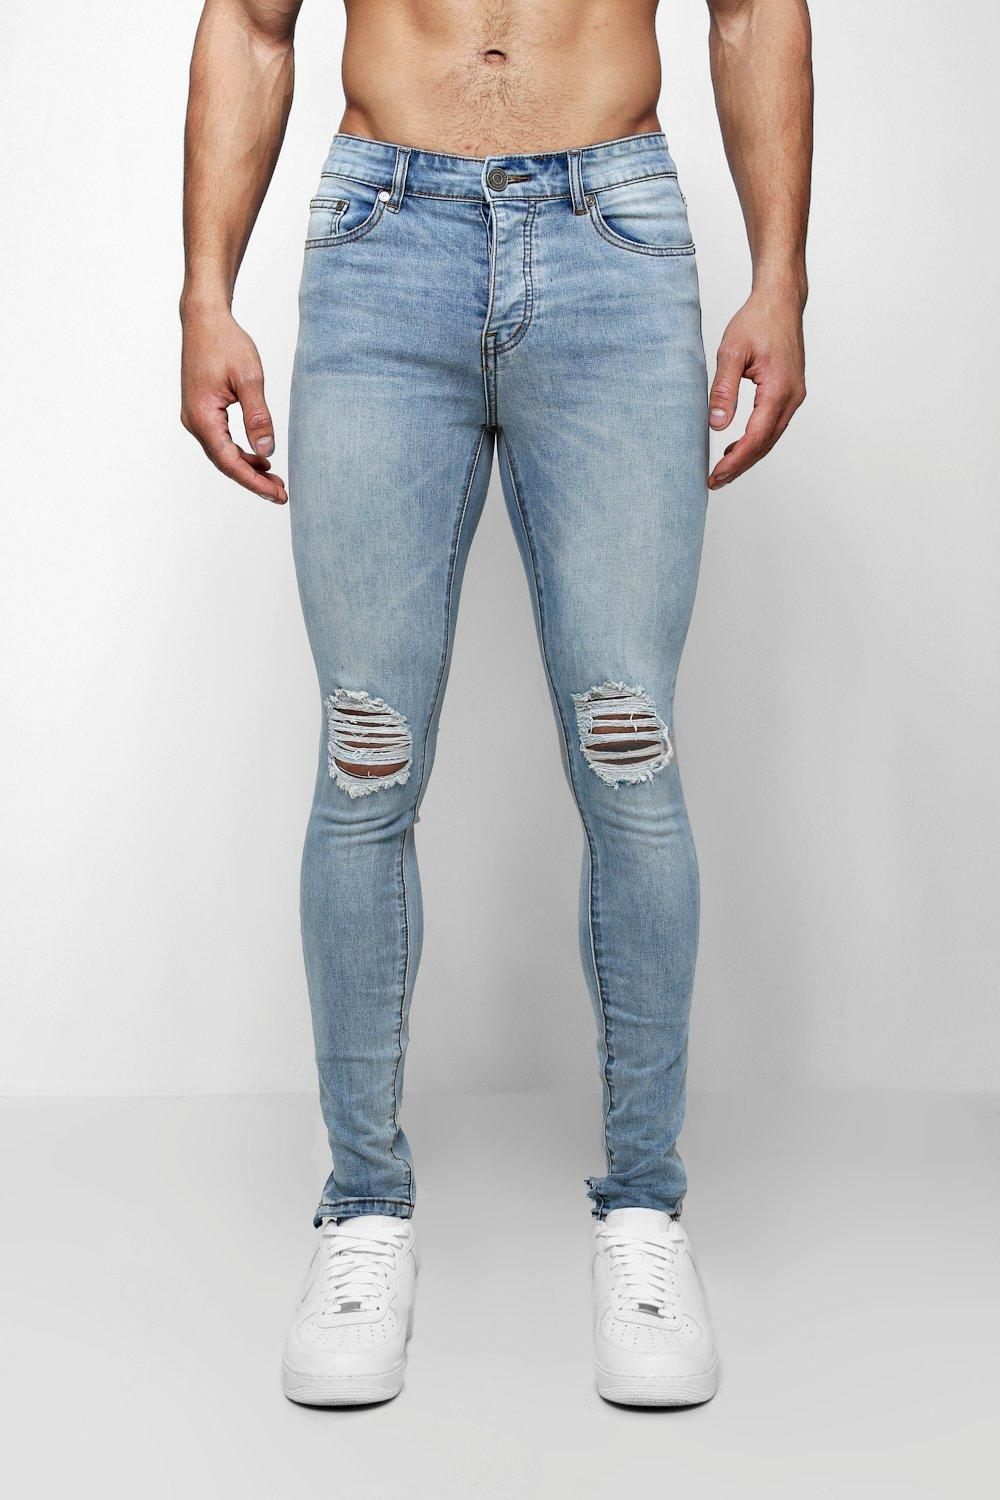 f6cc1ccd8a60 Boohoo Spray On Skinny Jeans With Ripped Knees in Blue for Men - Lyst